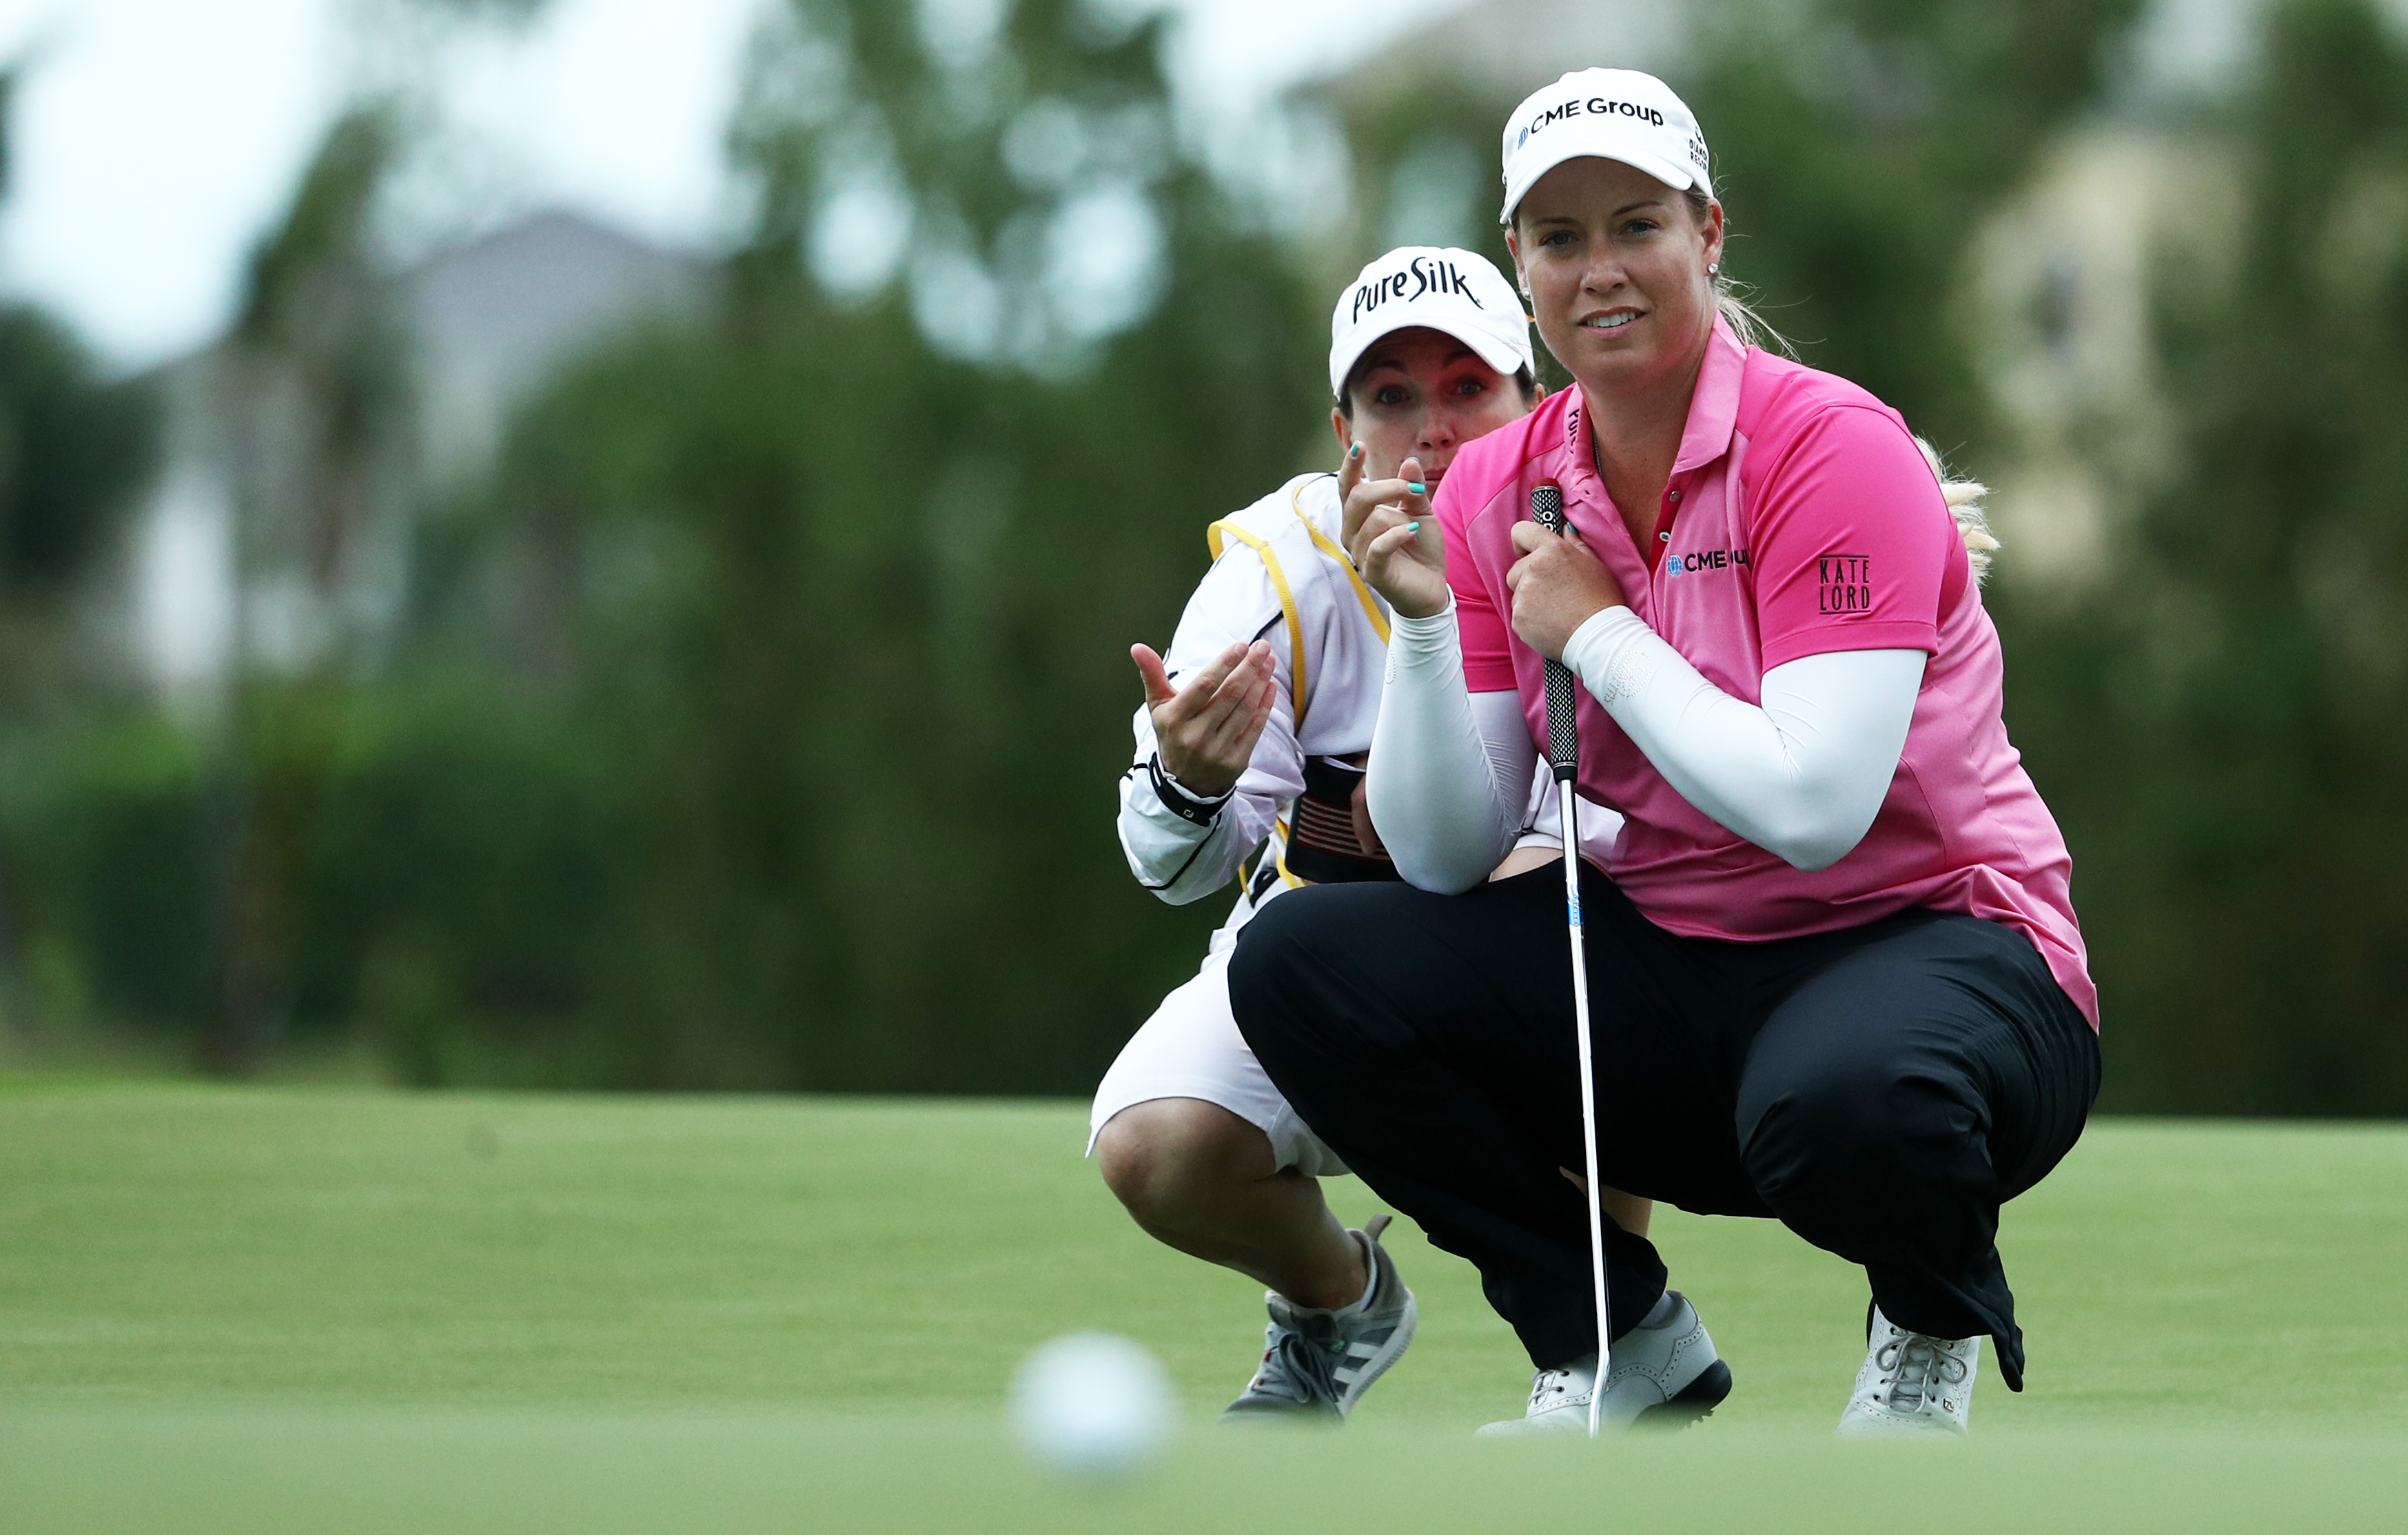 Brittany Lincicome and caddie Missy Pederson line up a putt at the 2017 Pure Silk Bahamas LPGA Classic.